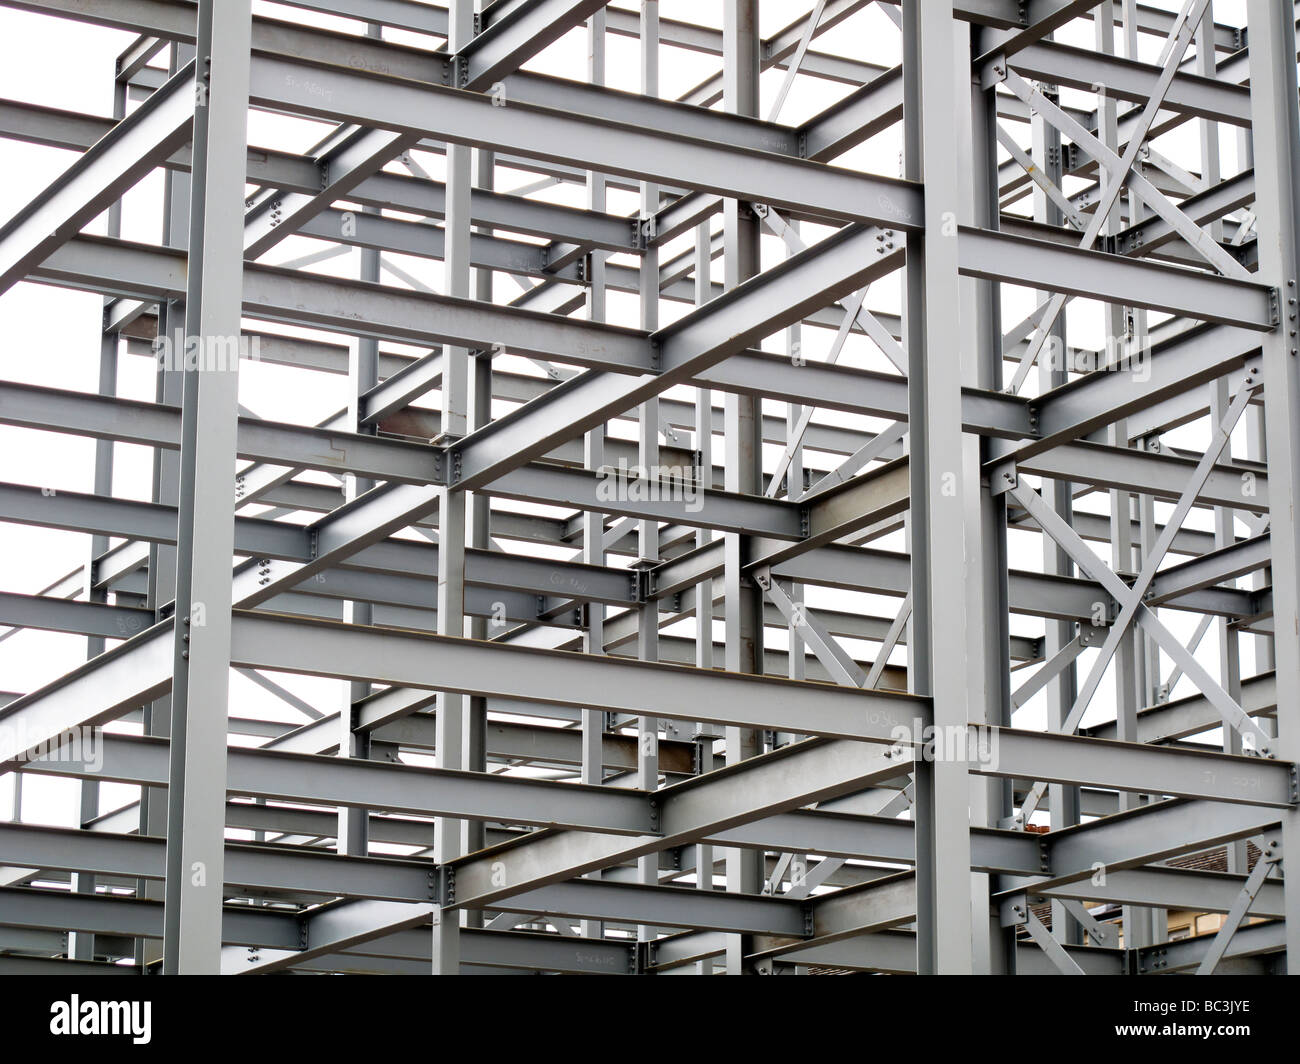 Steel framed building structure Stock Photo, Royalty Free Image ...